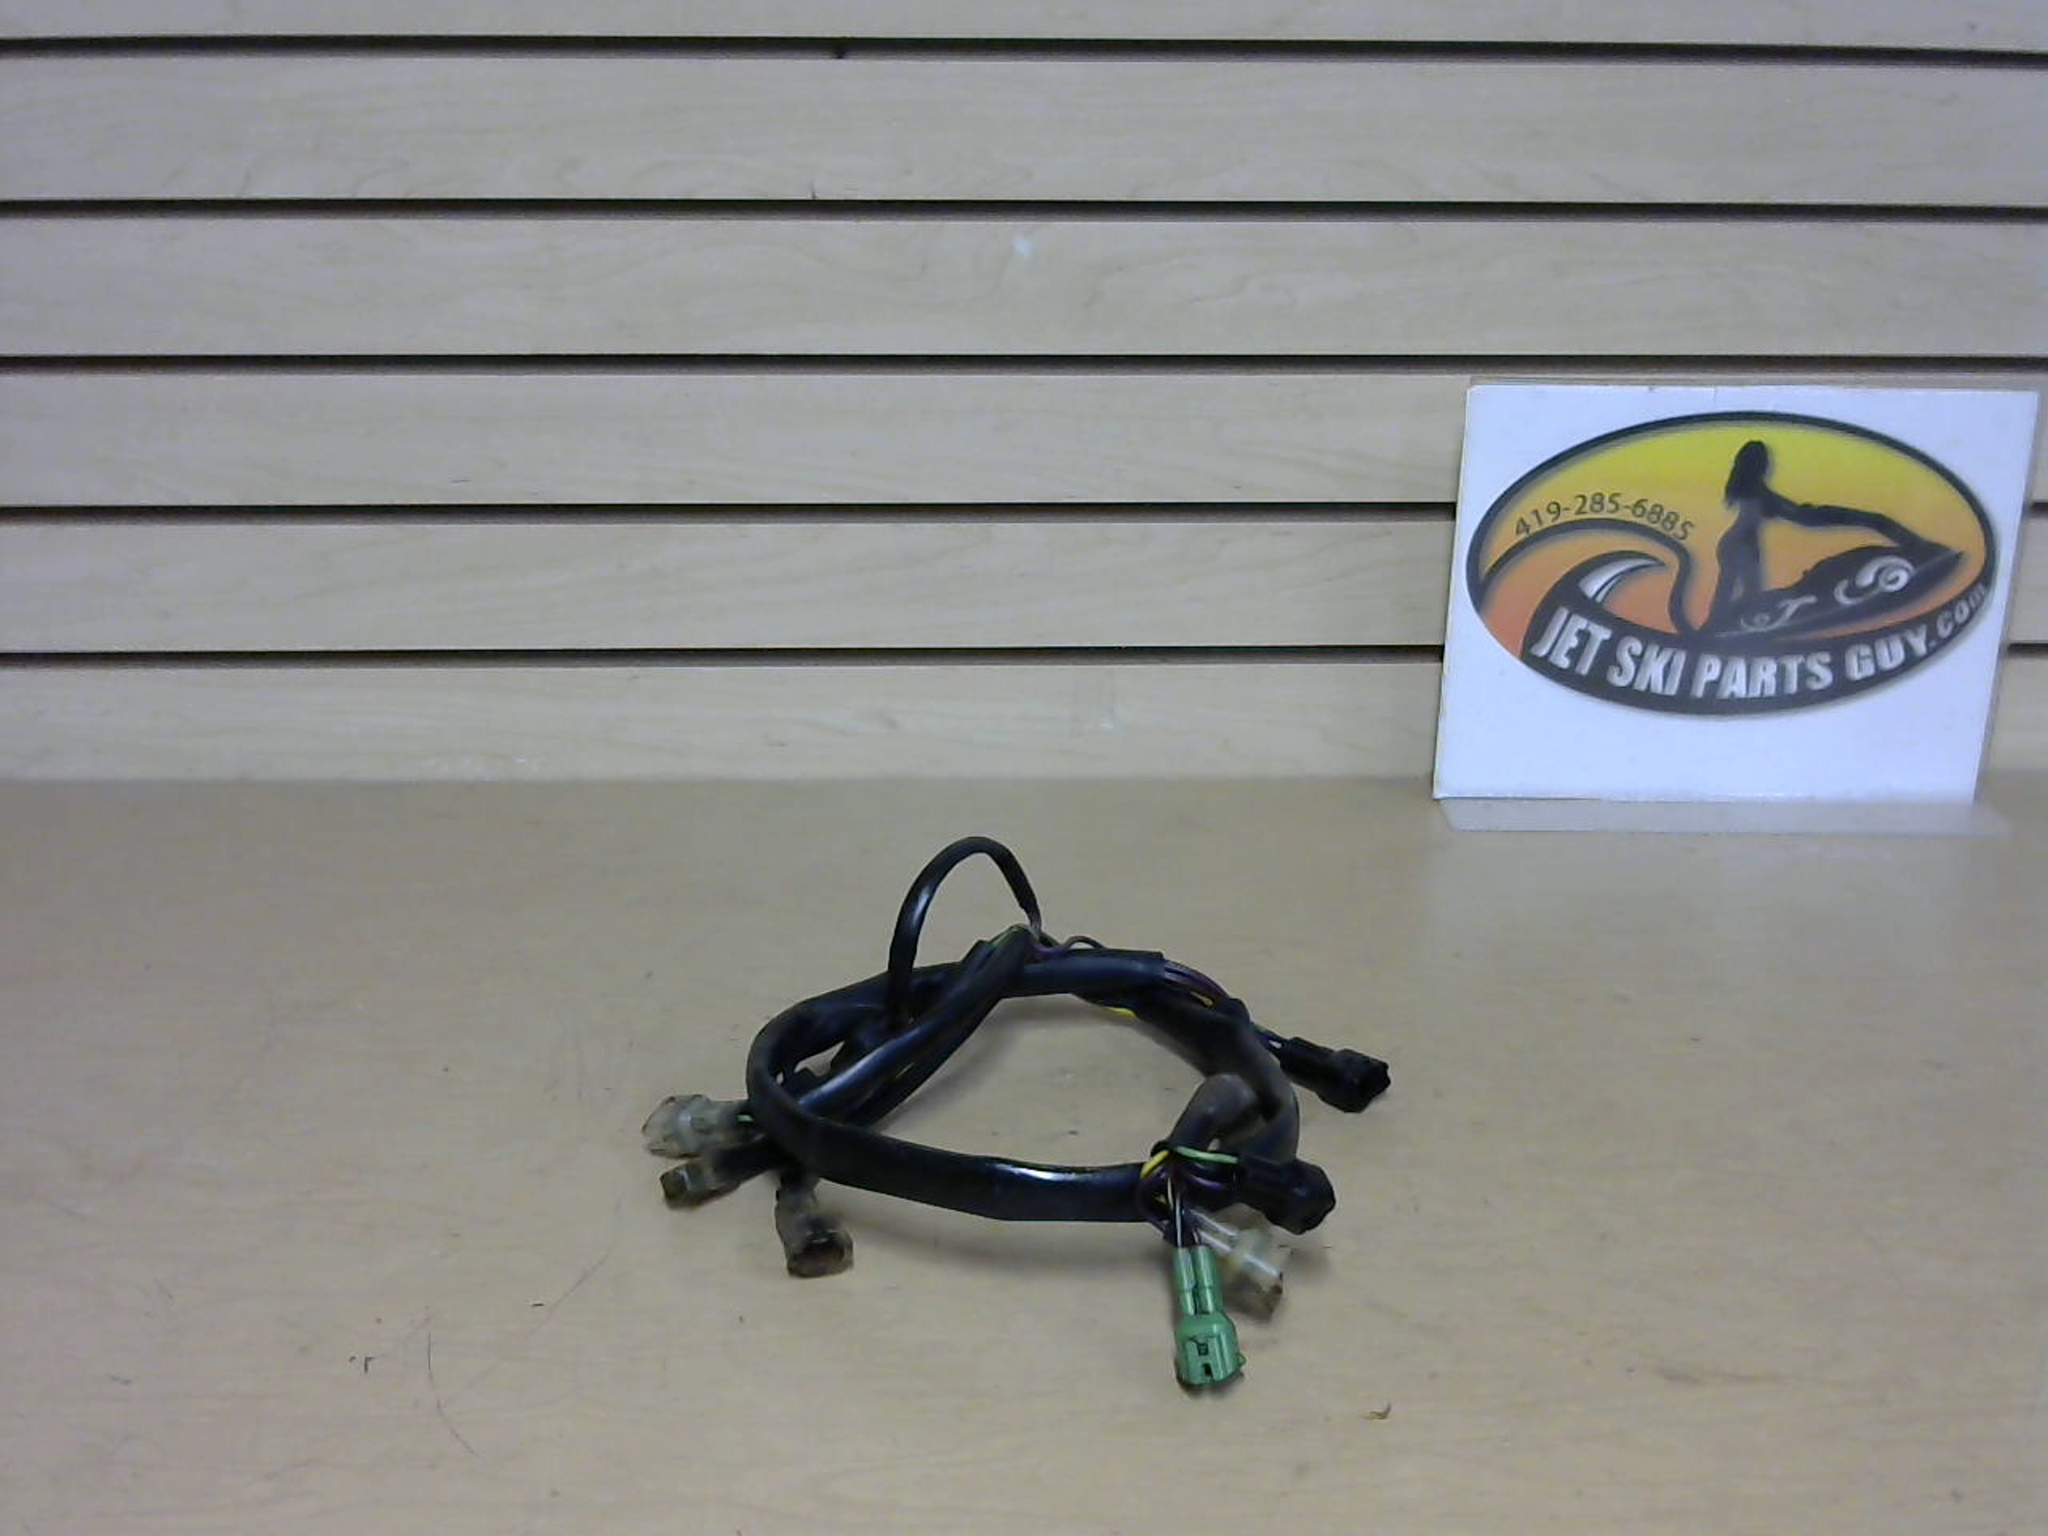 1997 Tigershark Daytona 1000 Wiring Harness 3008-498